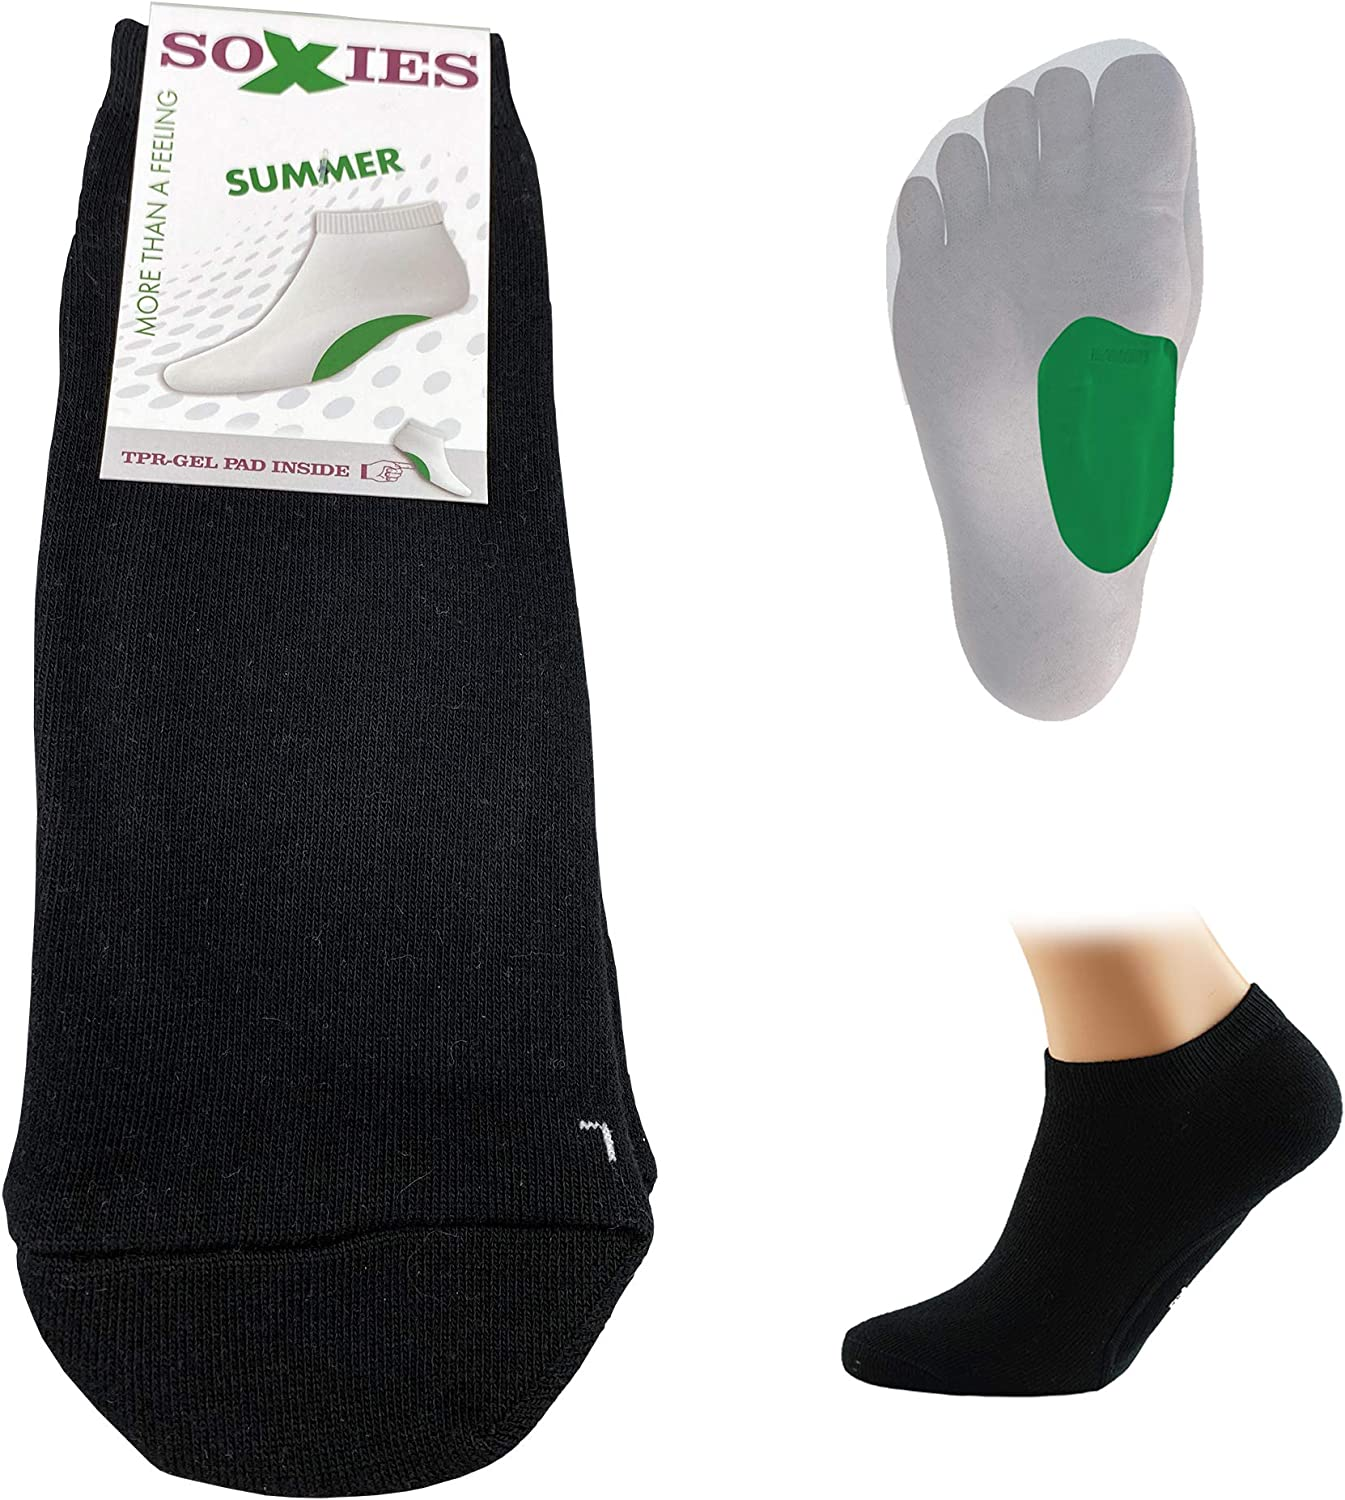 SoXies Summer - Socks with ergonomical Arch Support reduces Heel Spur Plantar Fasciitis Flat Foot Pain & Foot Ache